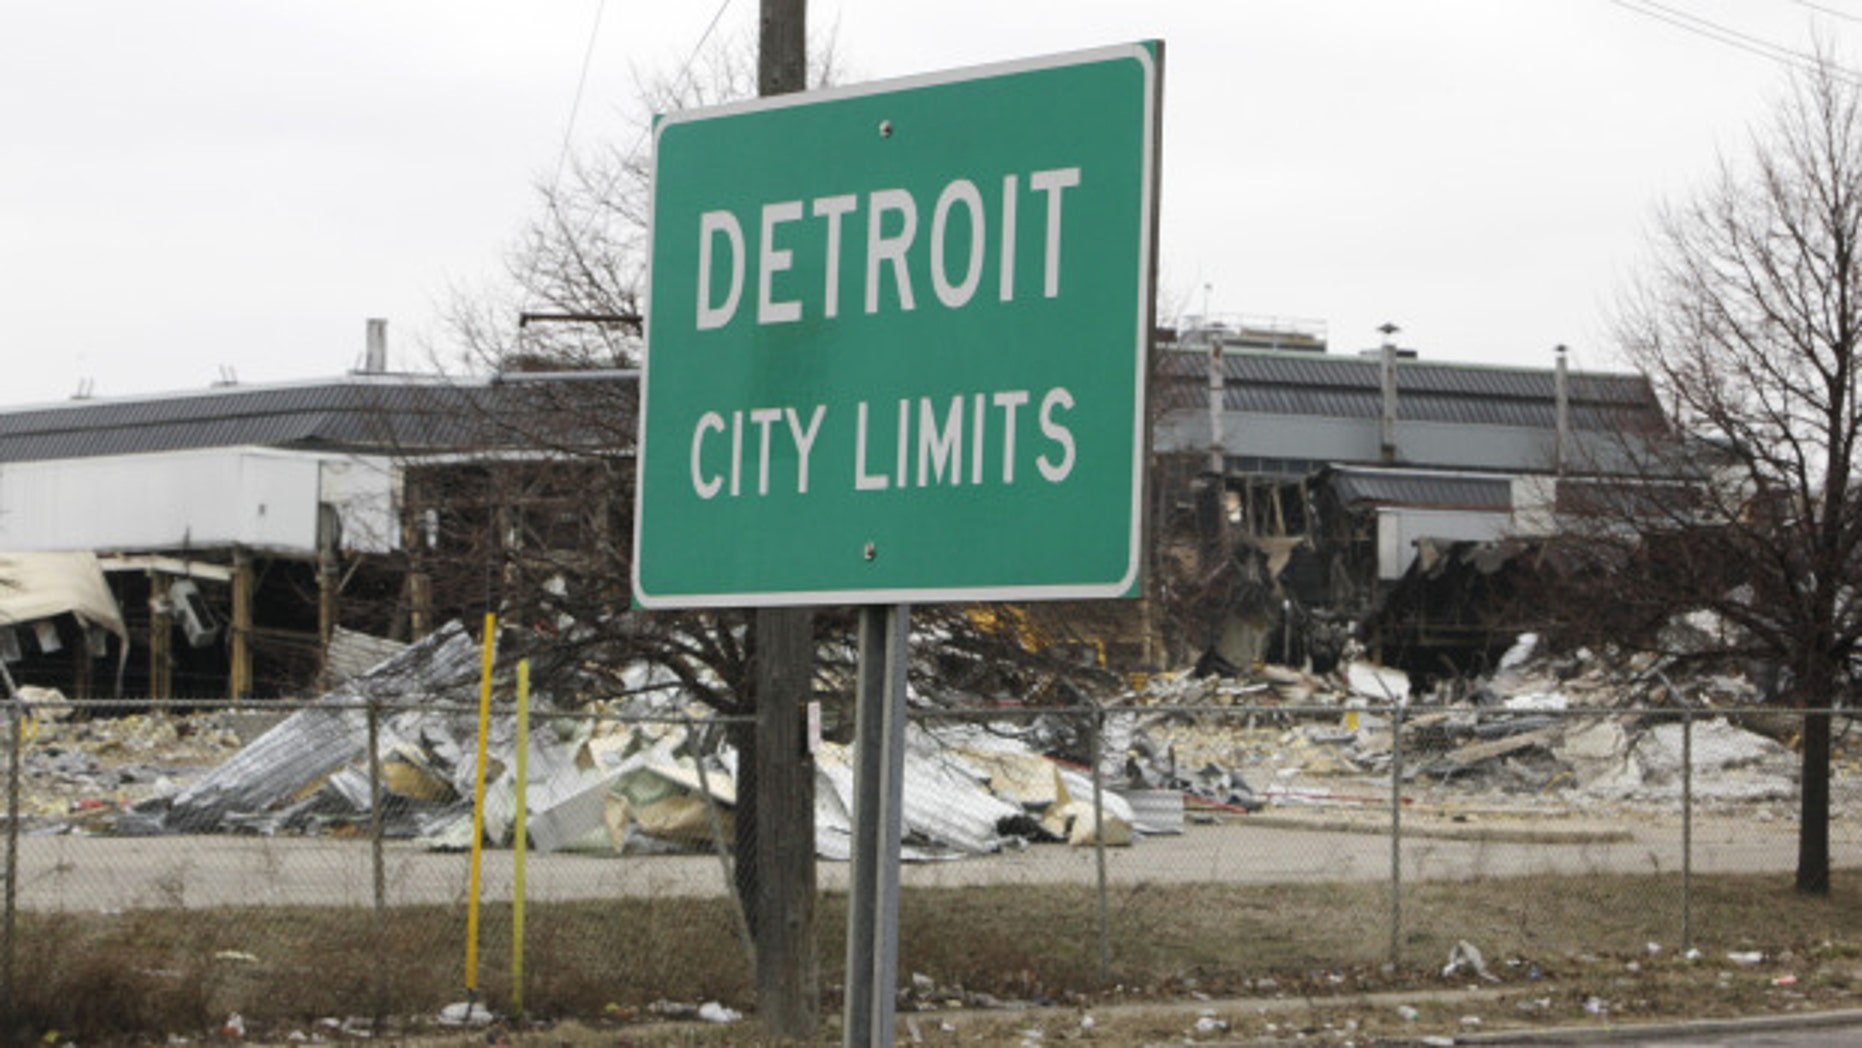 FILE -- A street sign showing Detroit's city limits is shown near where a former Chrysler McGraw glass.